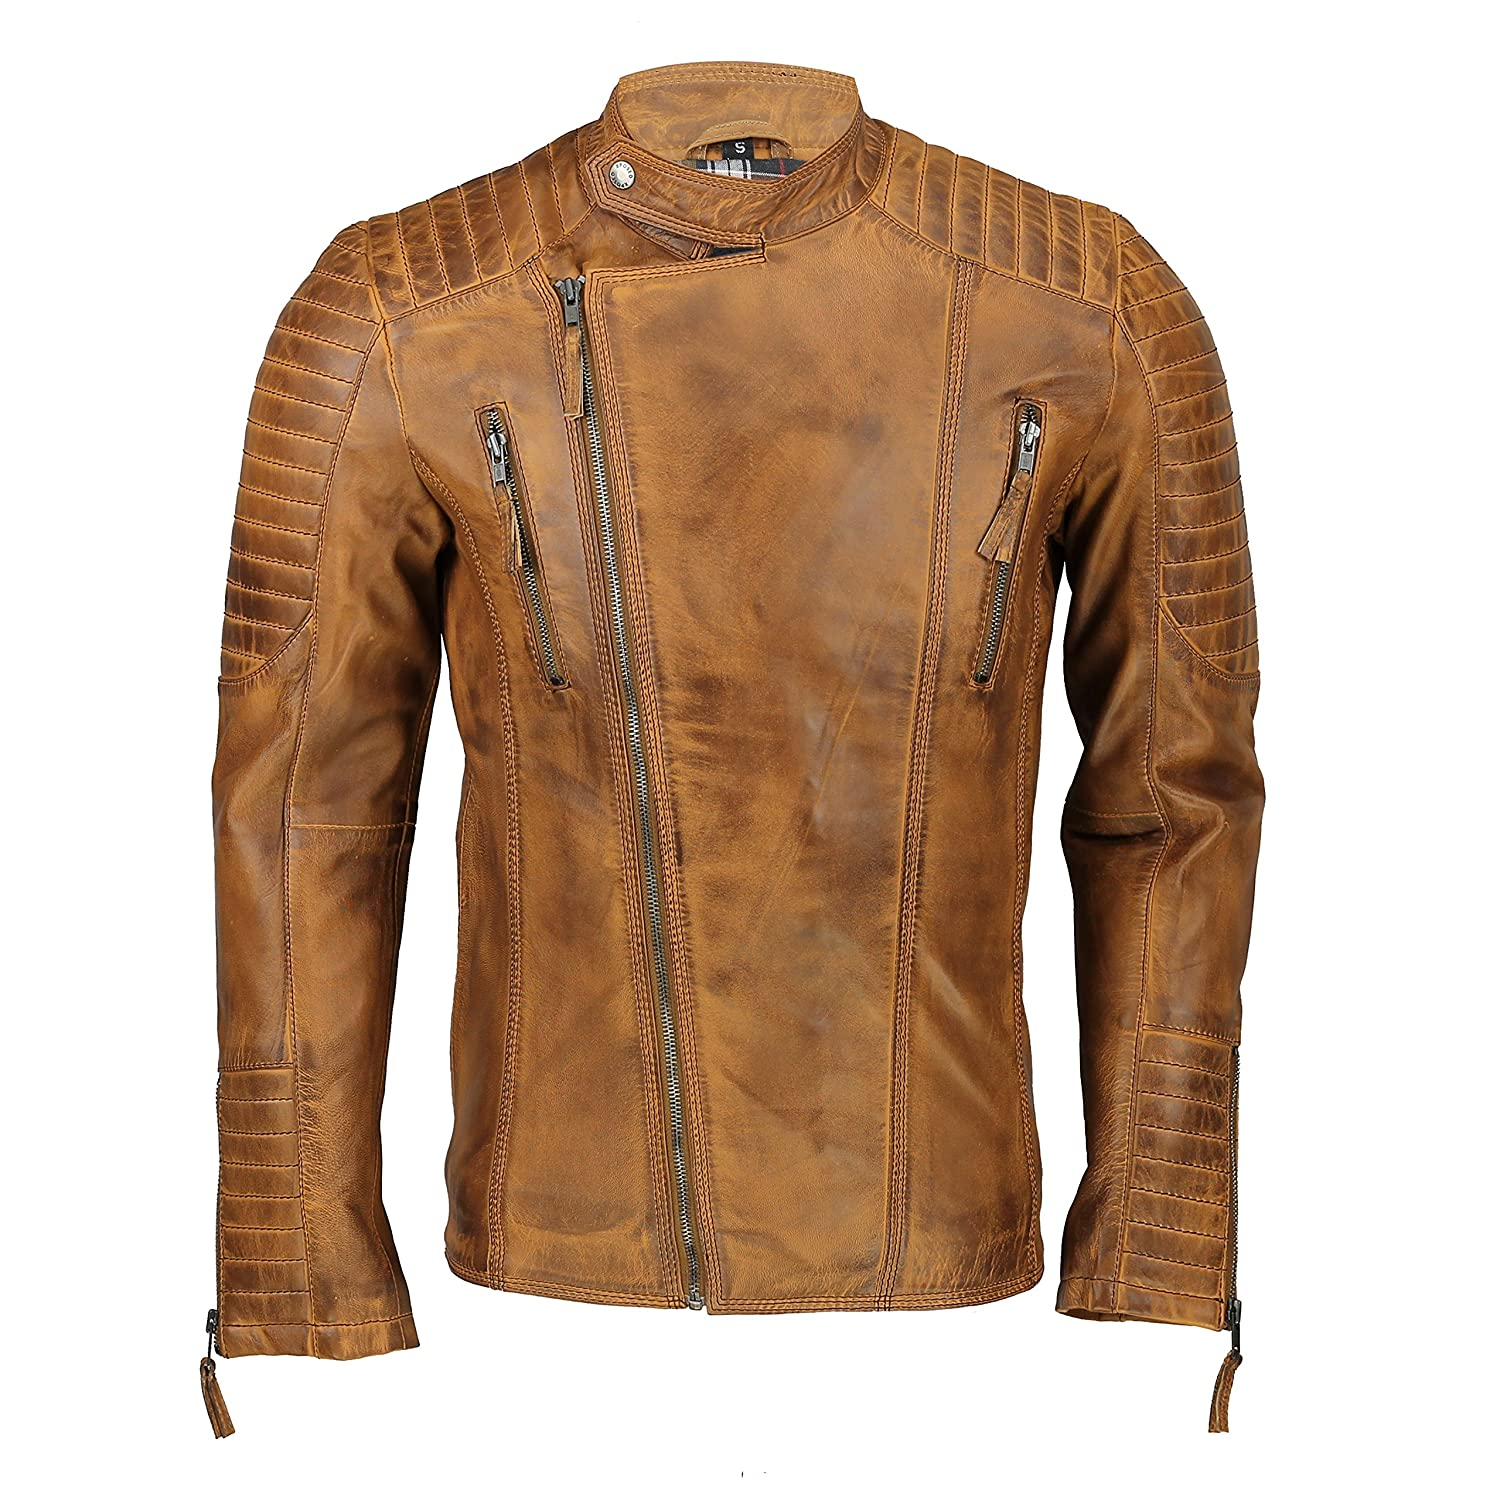 615c32e84 Xposed Mens Real Leather Slim Fit Biker Jacket Vintage Hand Painted Tan  Brown Urban Style